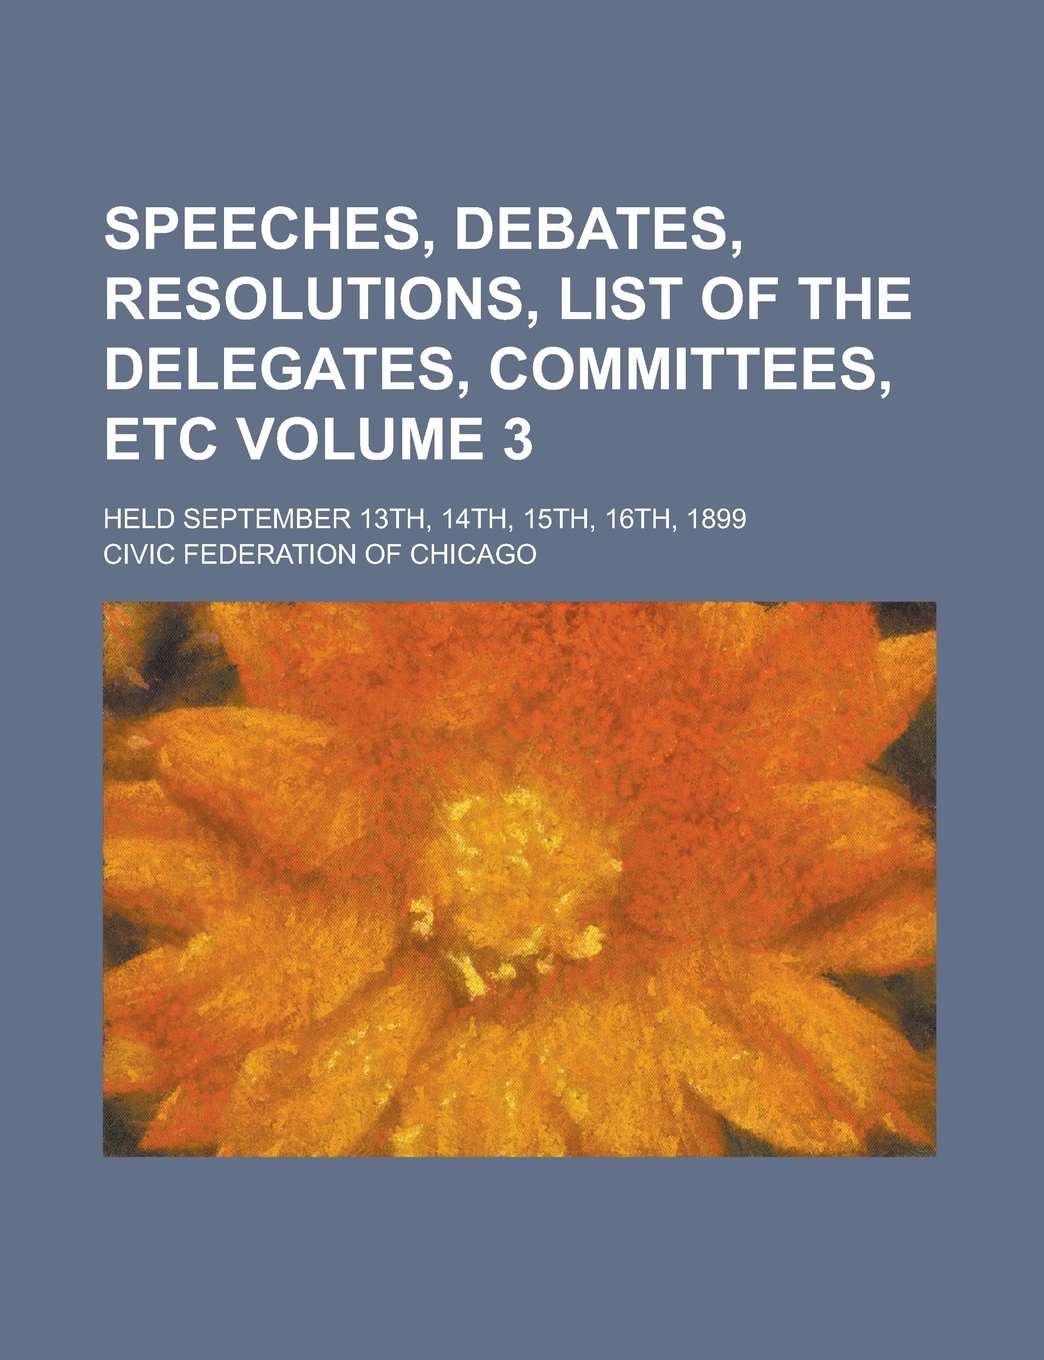 Download Speeches, Debates, Resolutions, List of the Delegates, Committees, Etc; Held September 13th, 14th, 15th, 16th, 1899 Volume 3 pdf epub